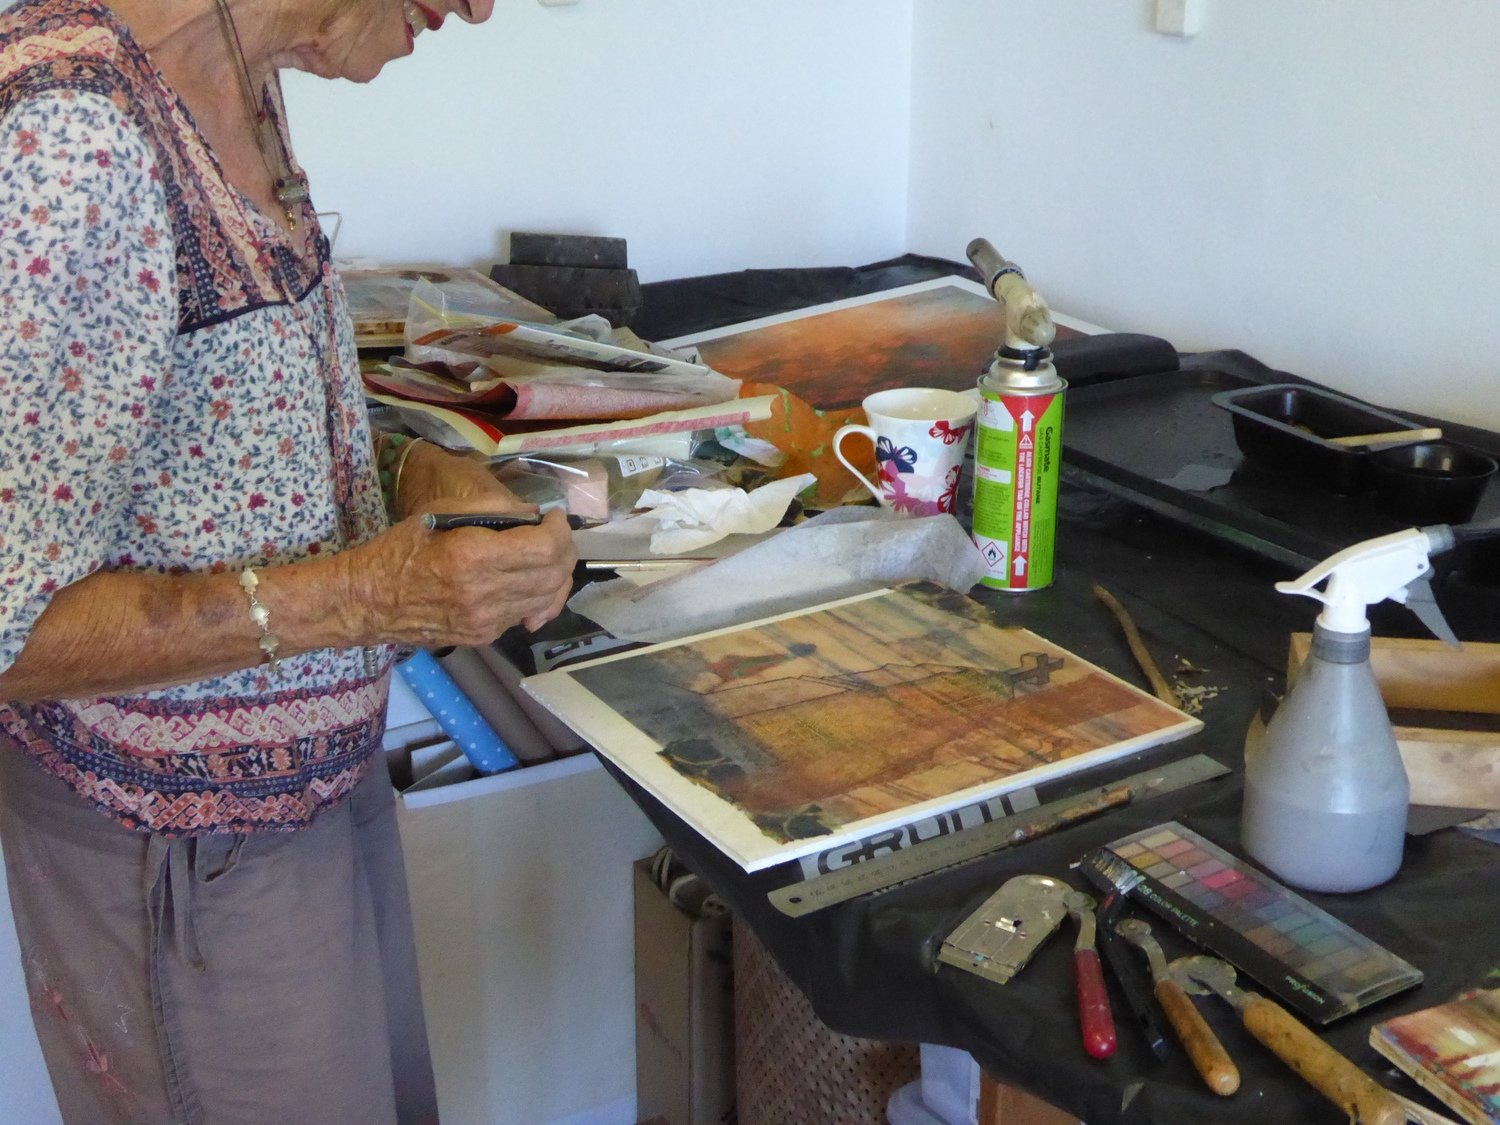 Port Kembla Photo Encaustic Workshop  04/05/2019